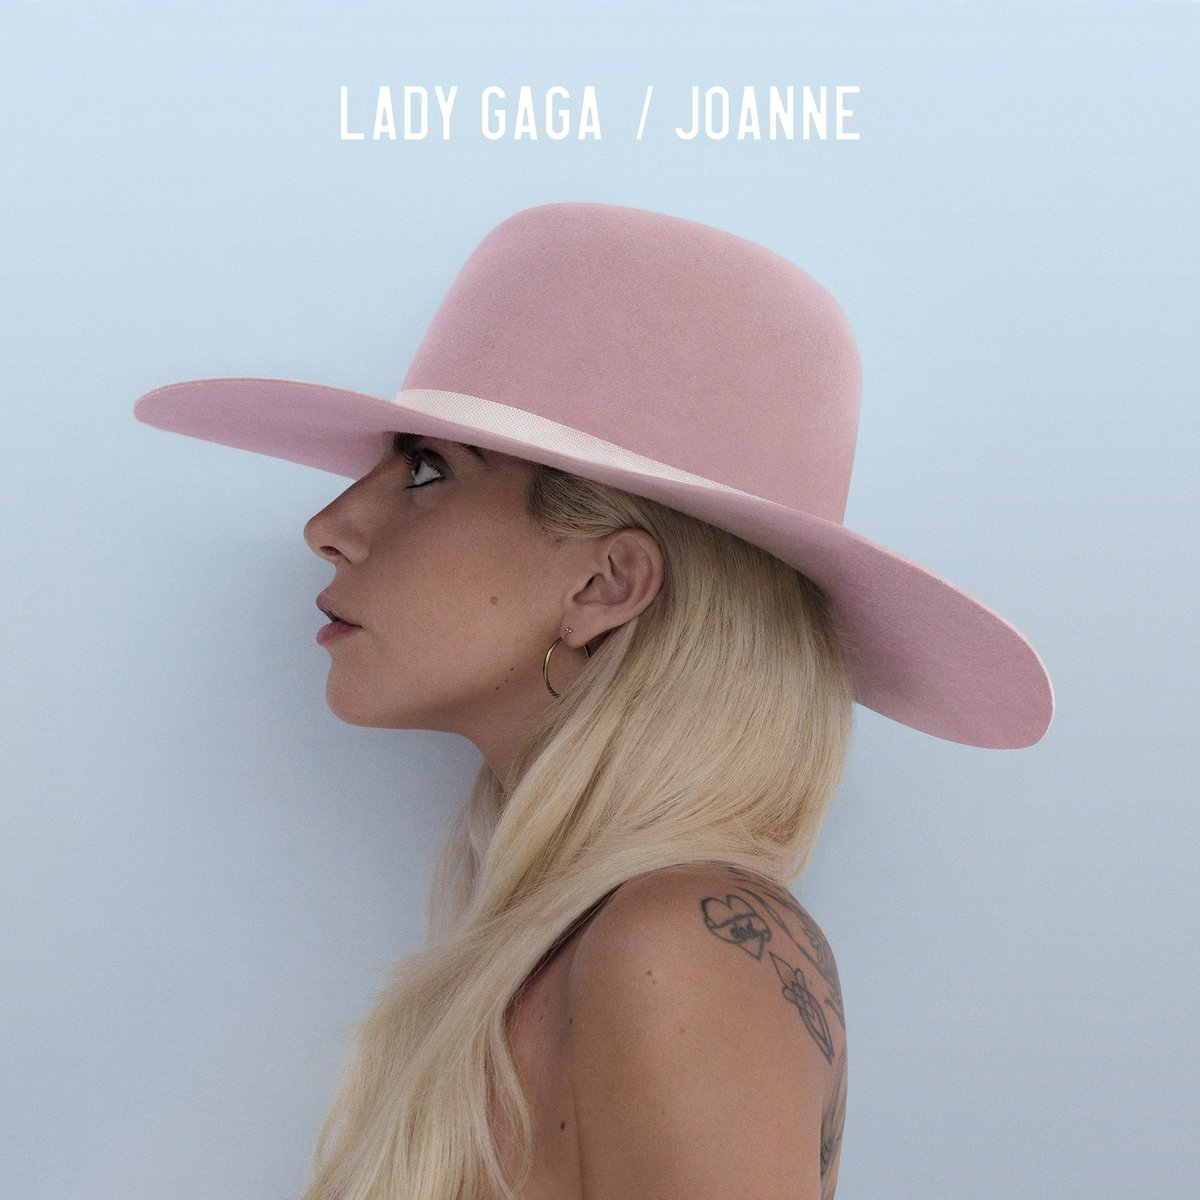 LADY GAGA / JOANNE NEW ALBUM OCT 21